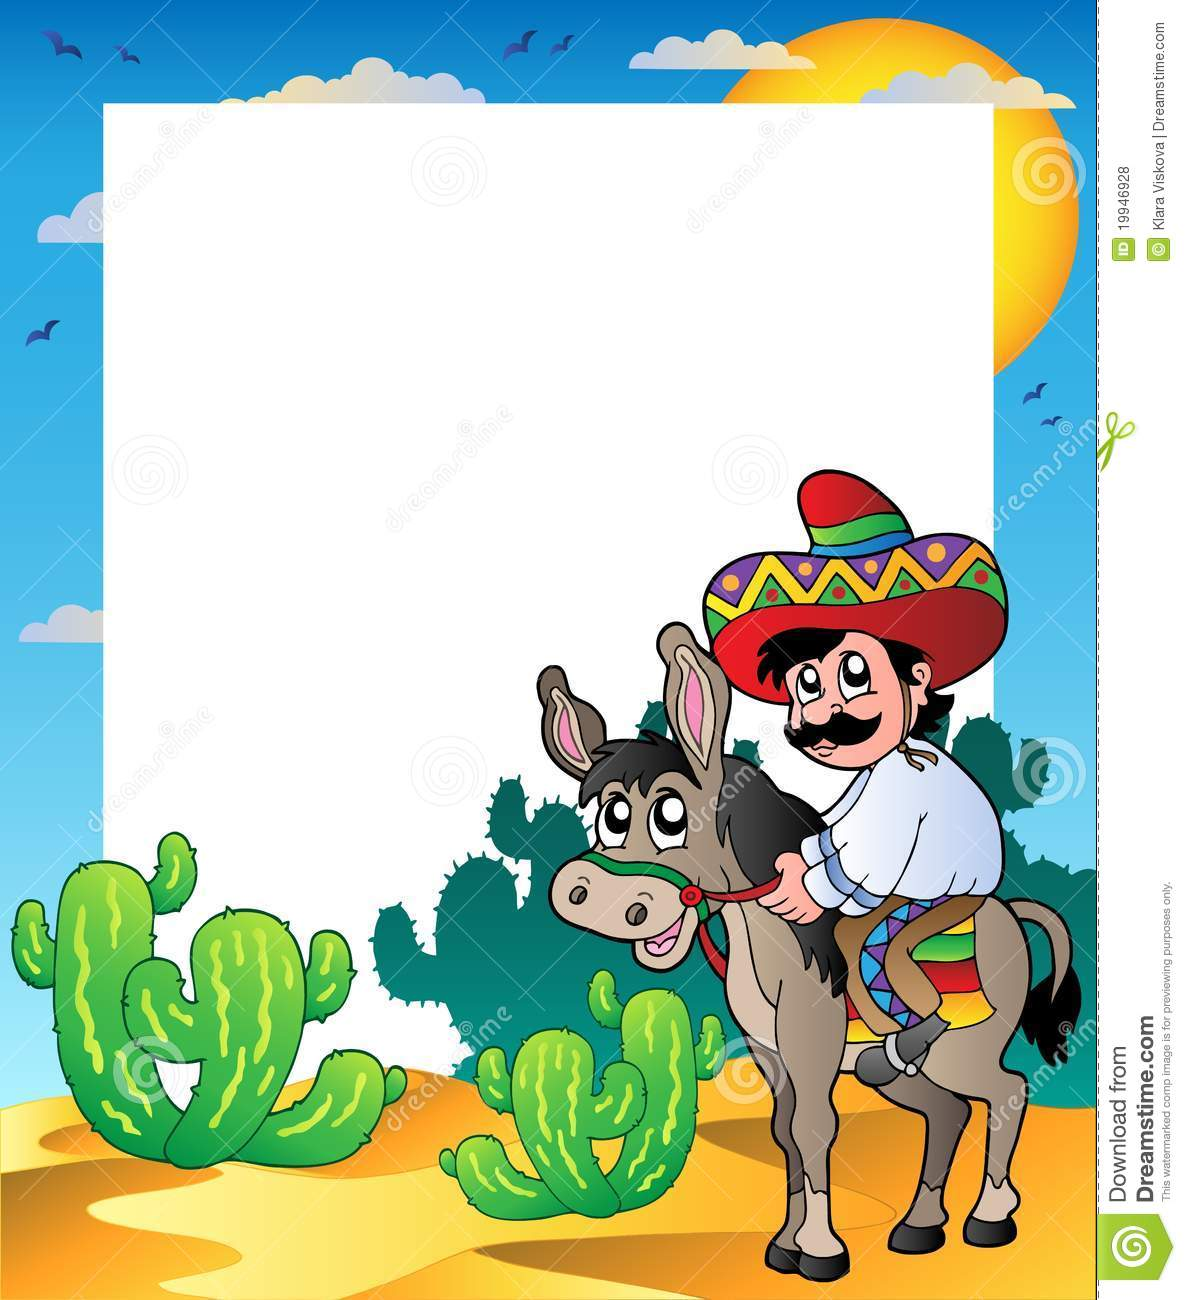 frame with mexican riding donkey - Mexican Frame